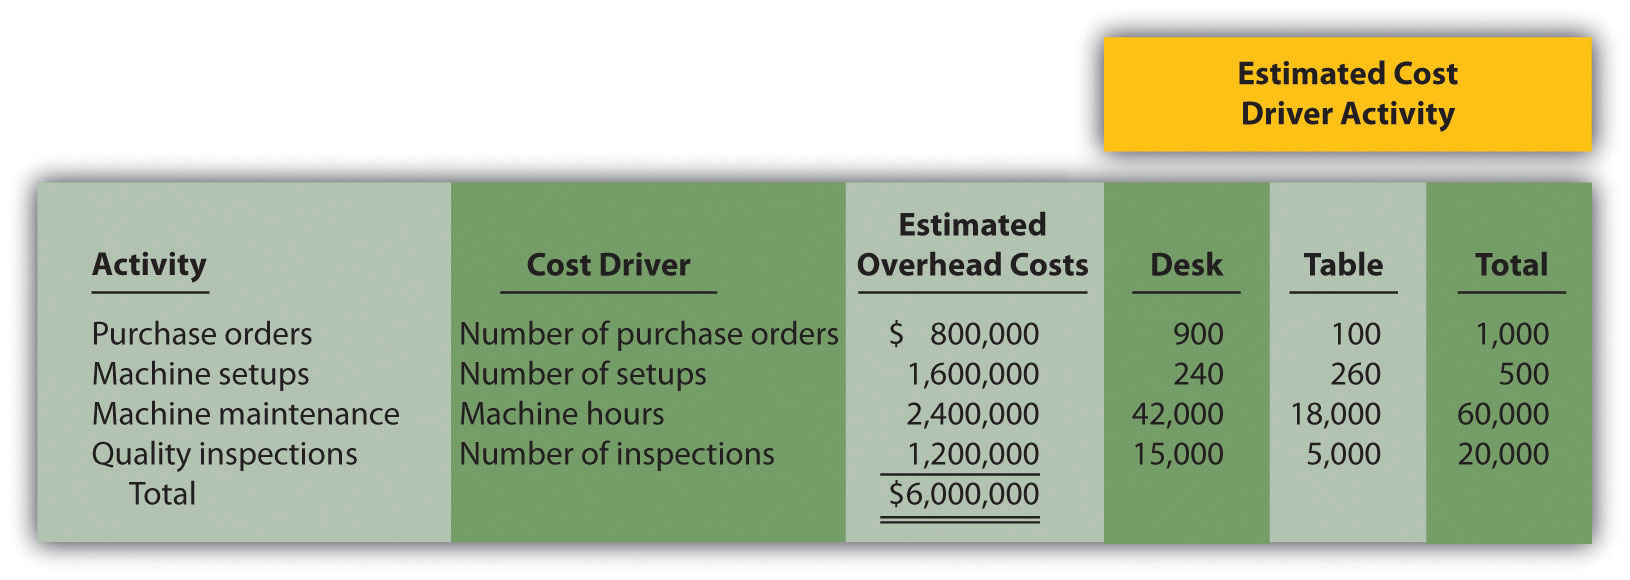 managerial accounting service cost allocations The allocation of service department costs occurs to support measurement of full product cost (as contemplated by gaap), to make managers of operating units aware of the complete cost of their activities, and to discourage waste and inefficiency by over-utilization of service departments.